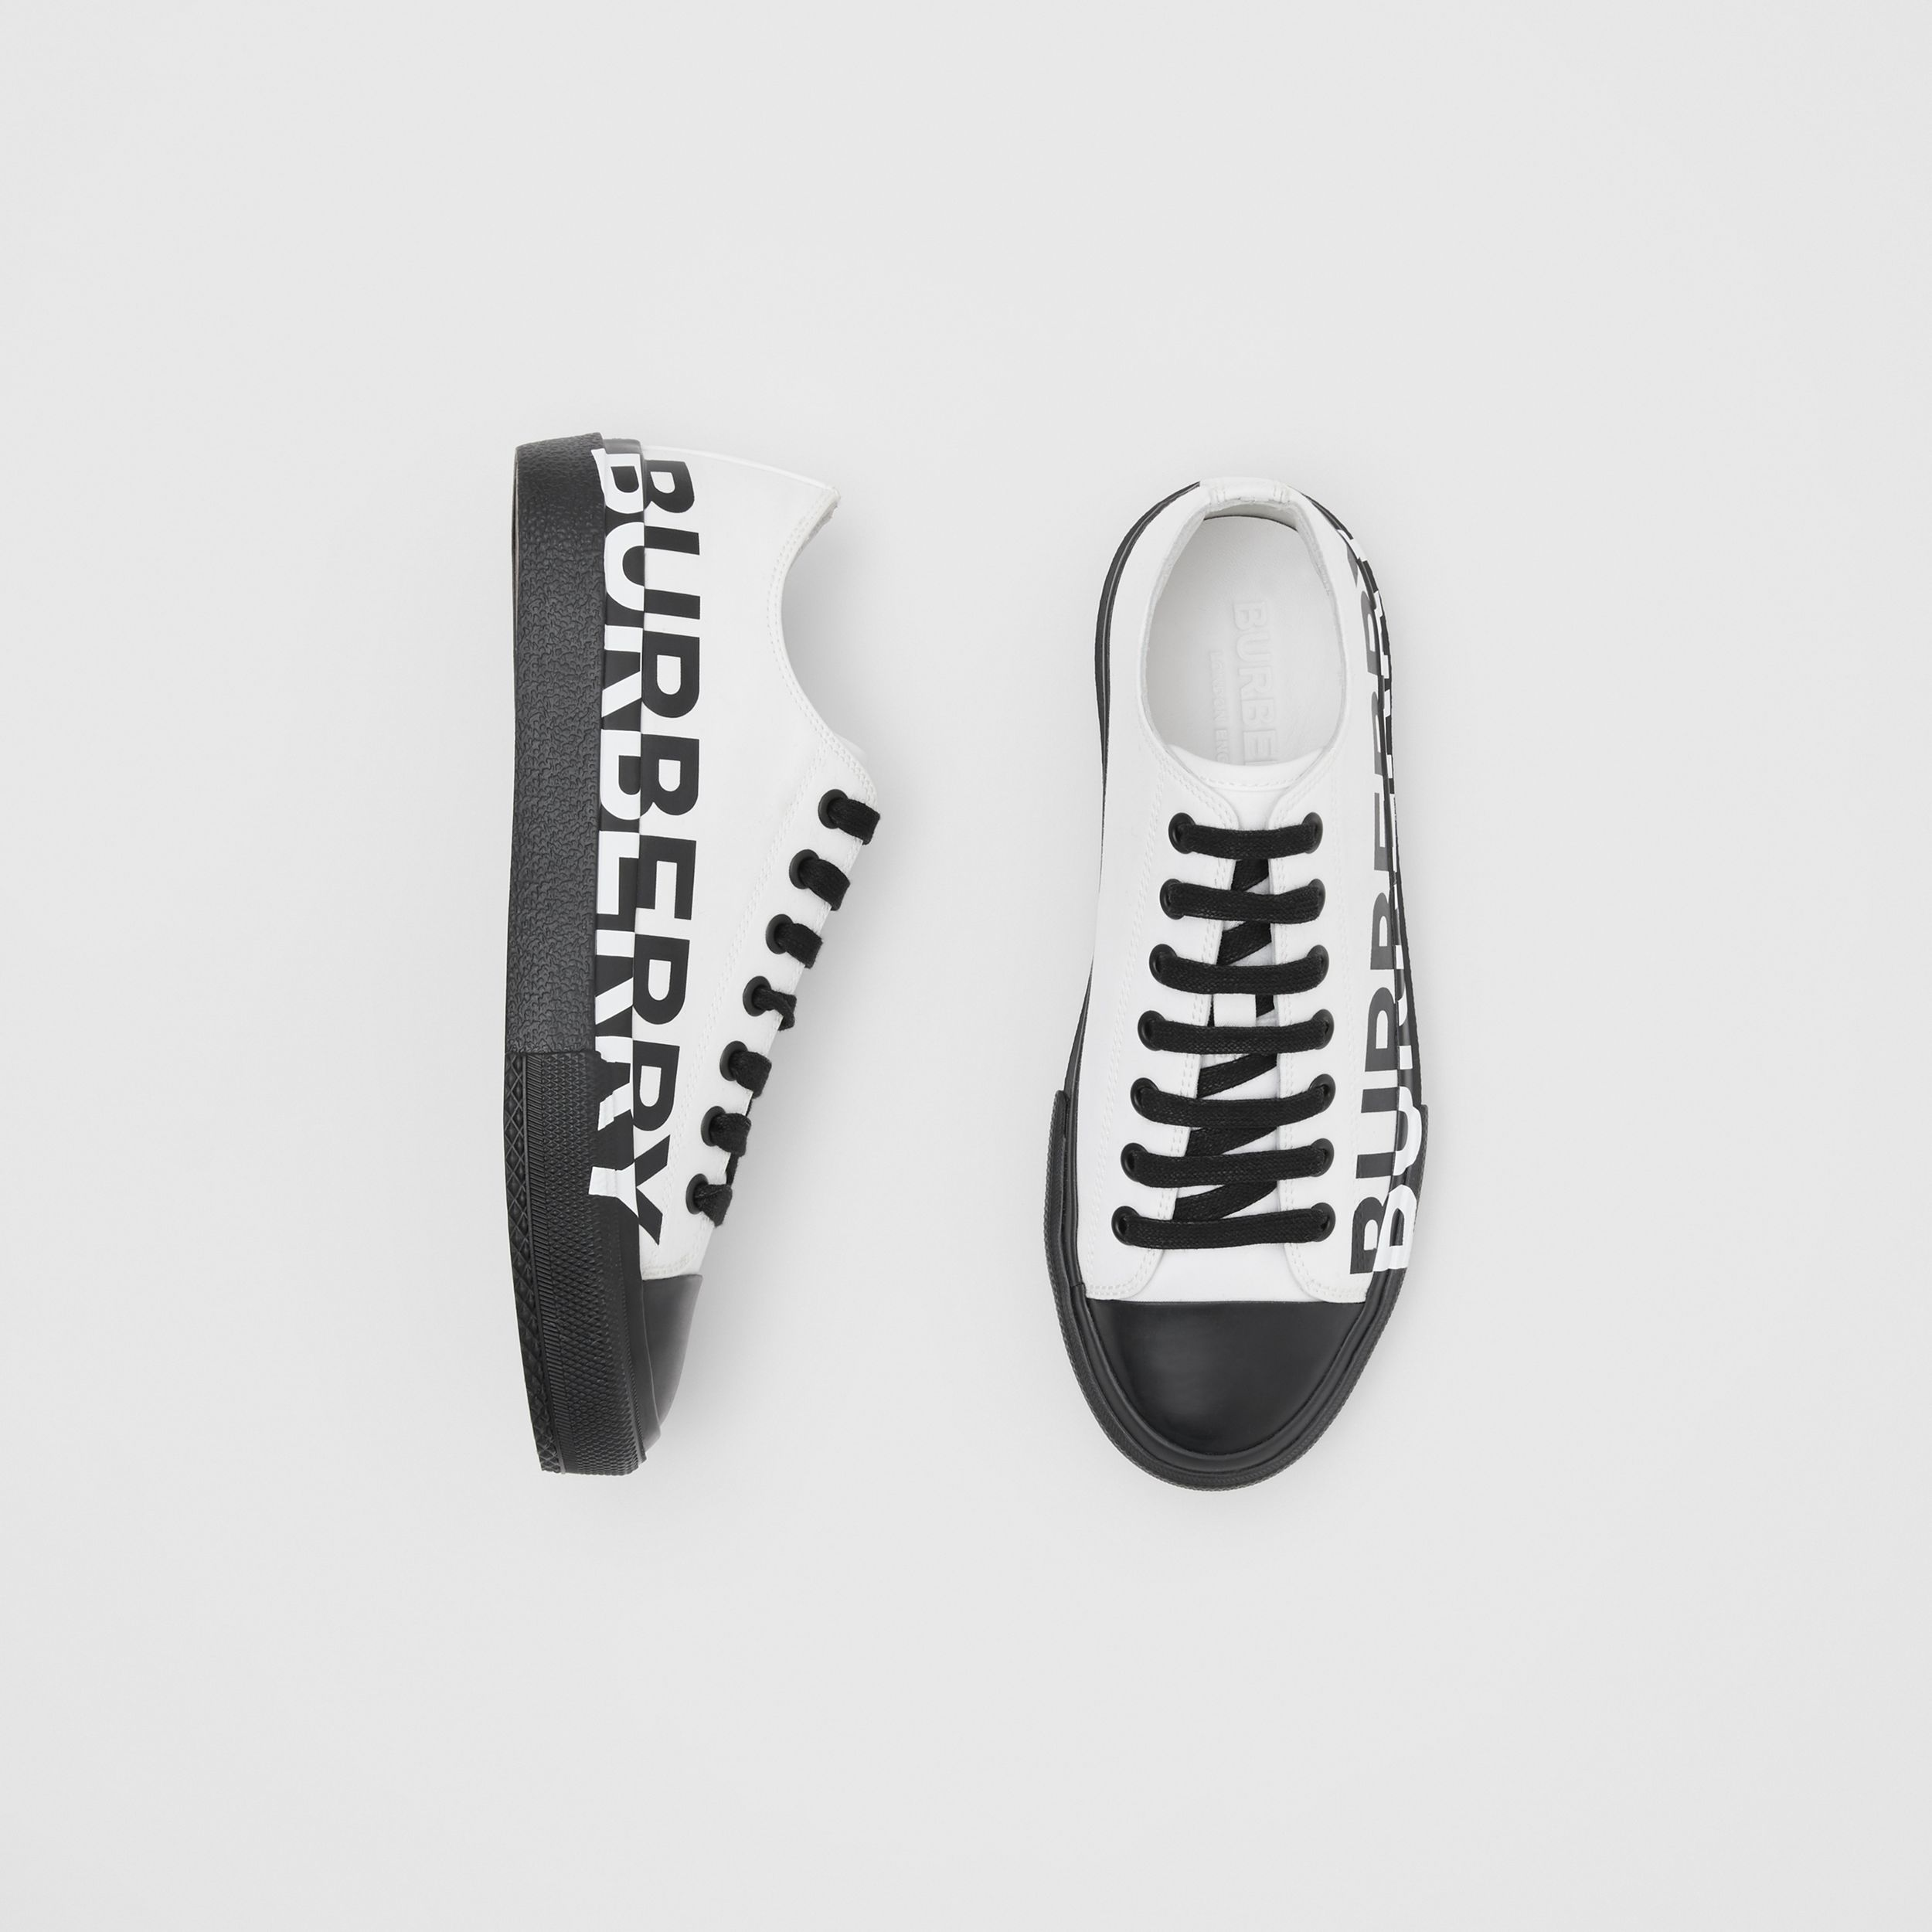 Logo Print Two-tone Cotton Gabardine Sneakers in Optic White/black - Women | Burberry - 1